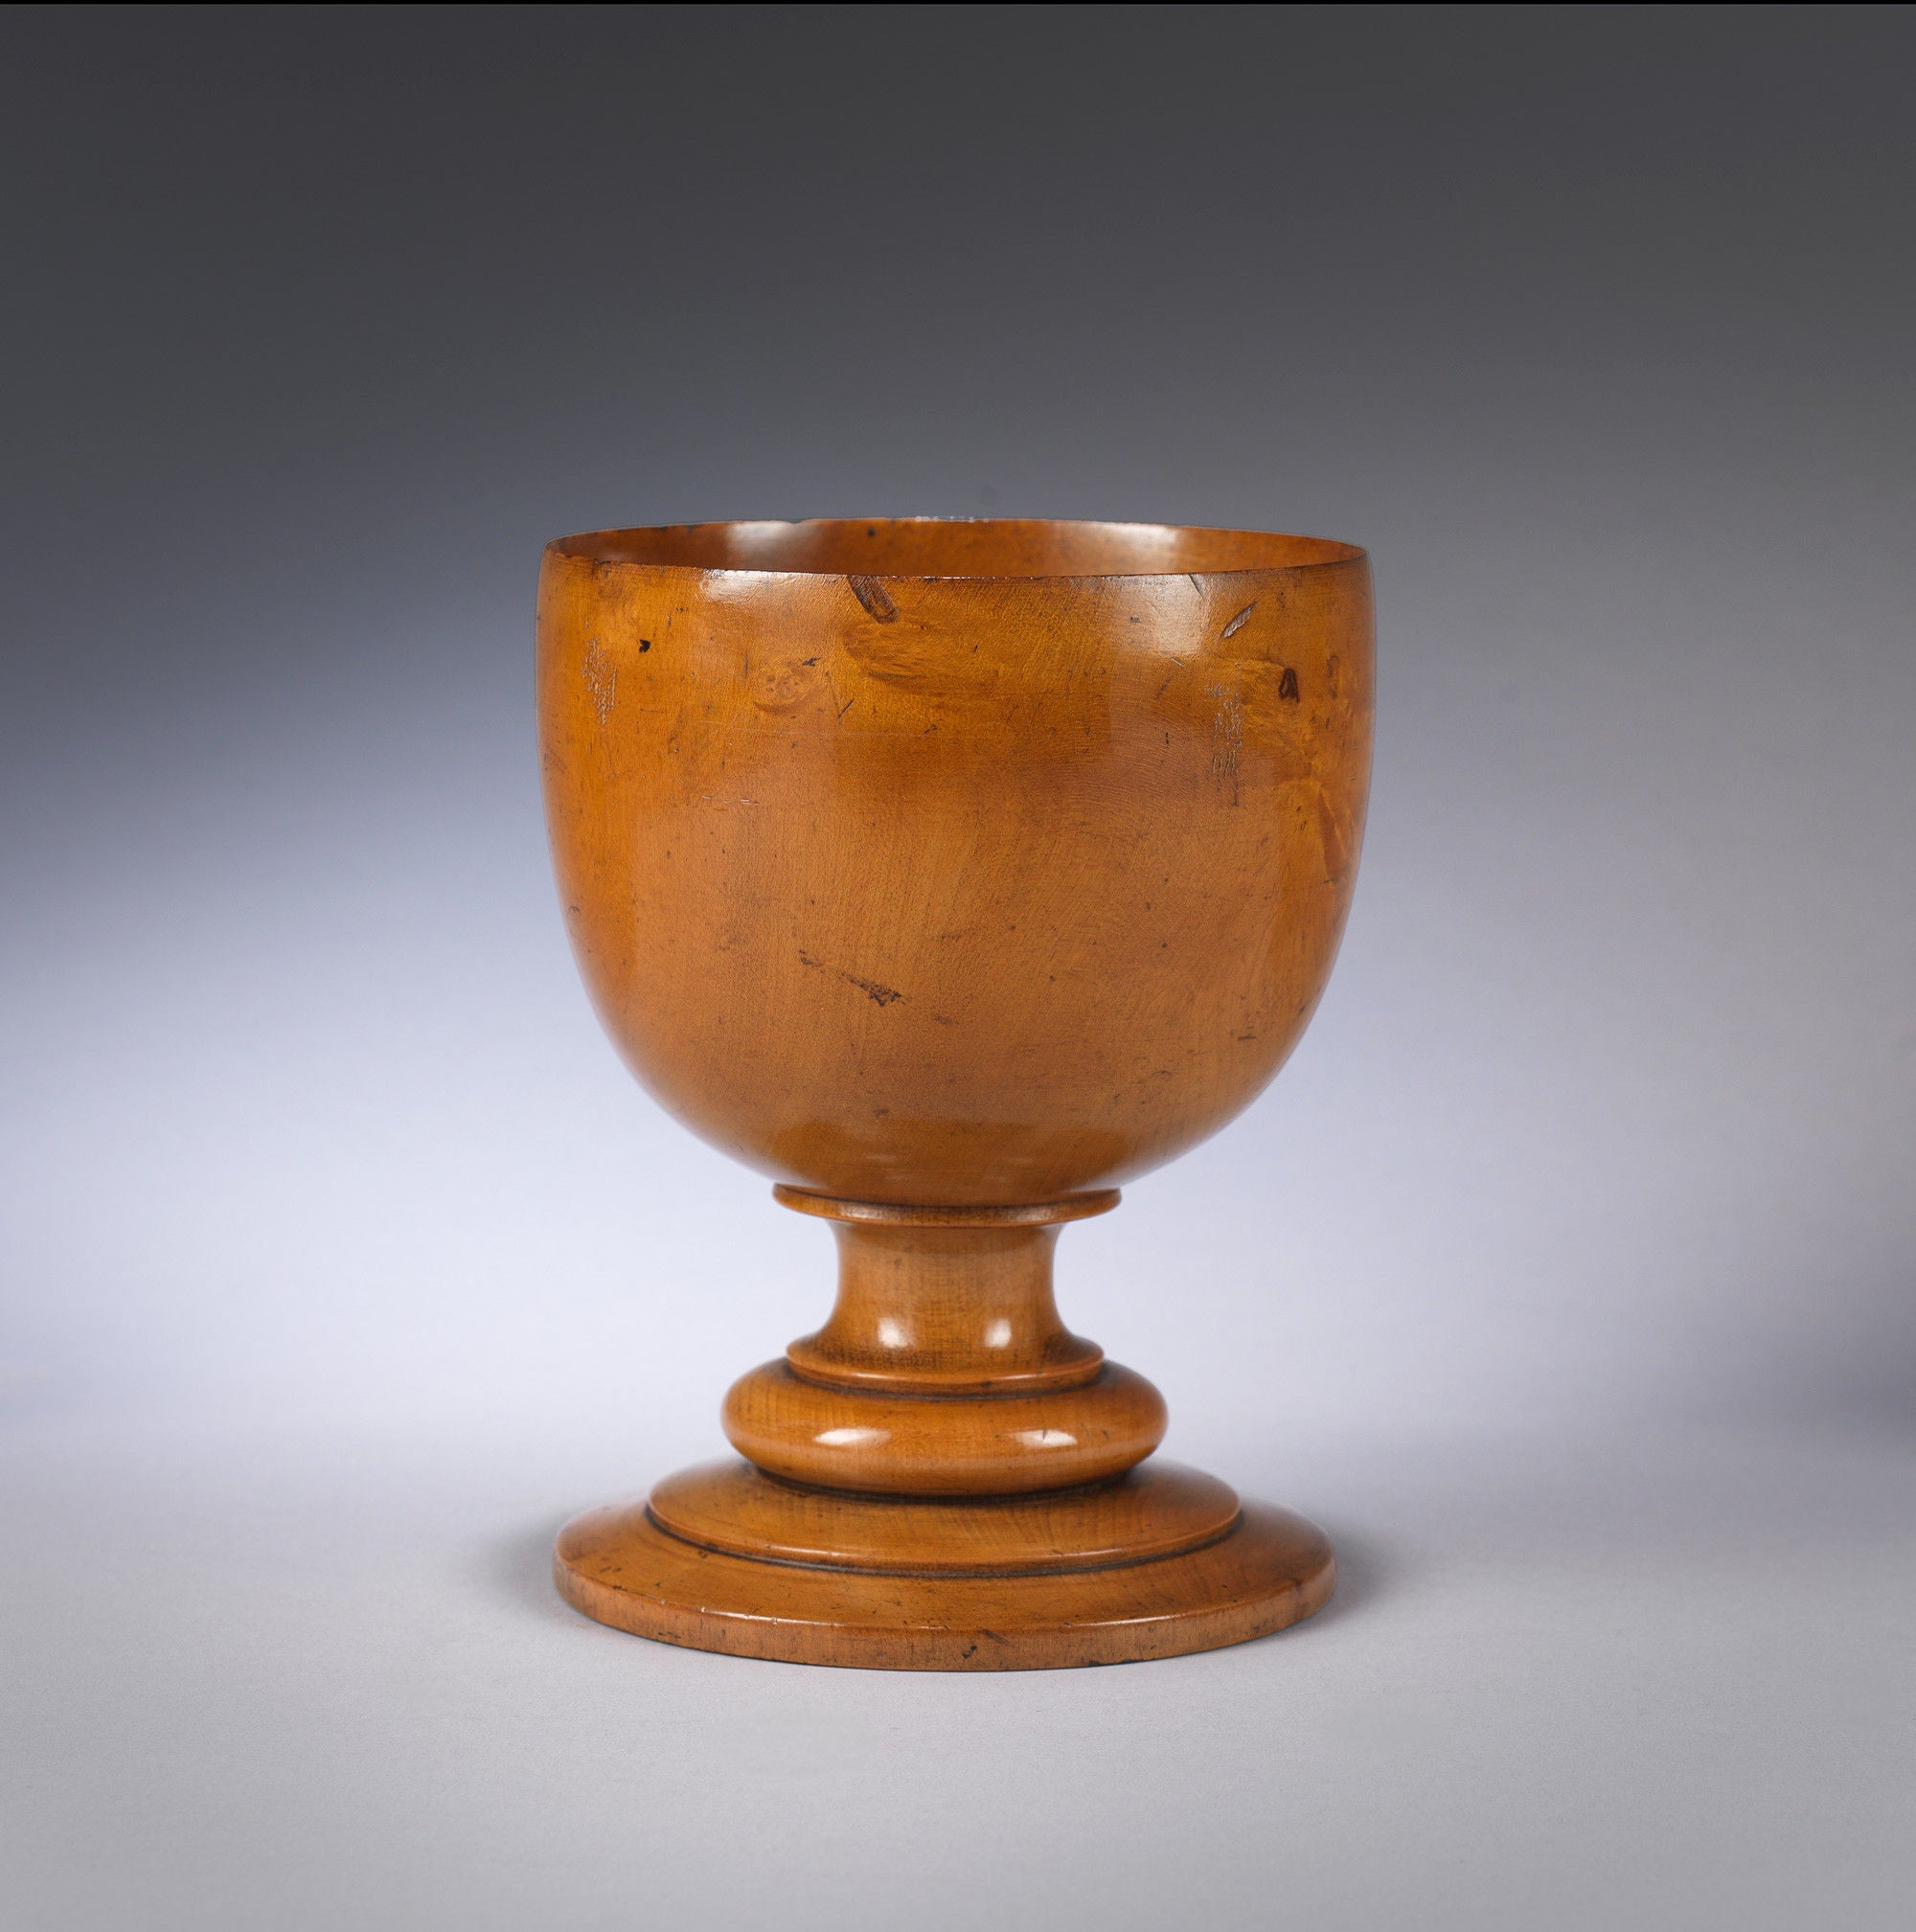 Generous Wine Goblet or Loving Cup